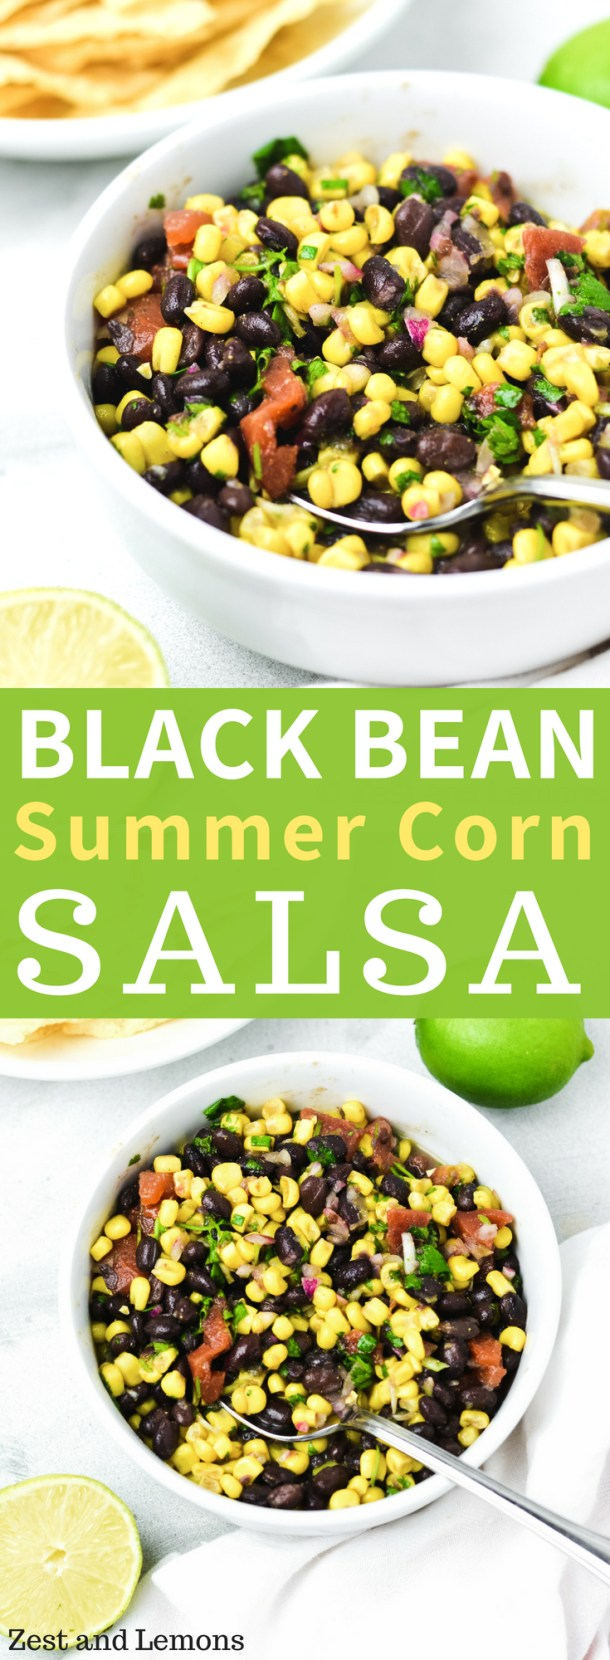 easy black bean and corn salsa, perfect for dipping chips or adding to tacos - Zest and Lemons #glutenfree #salsarecipes